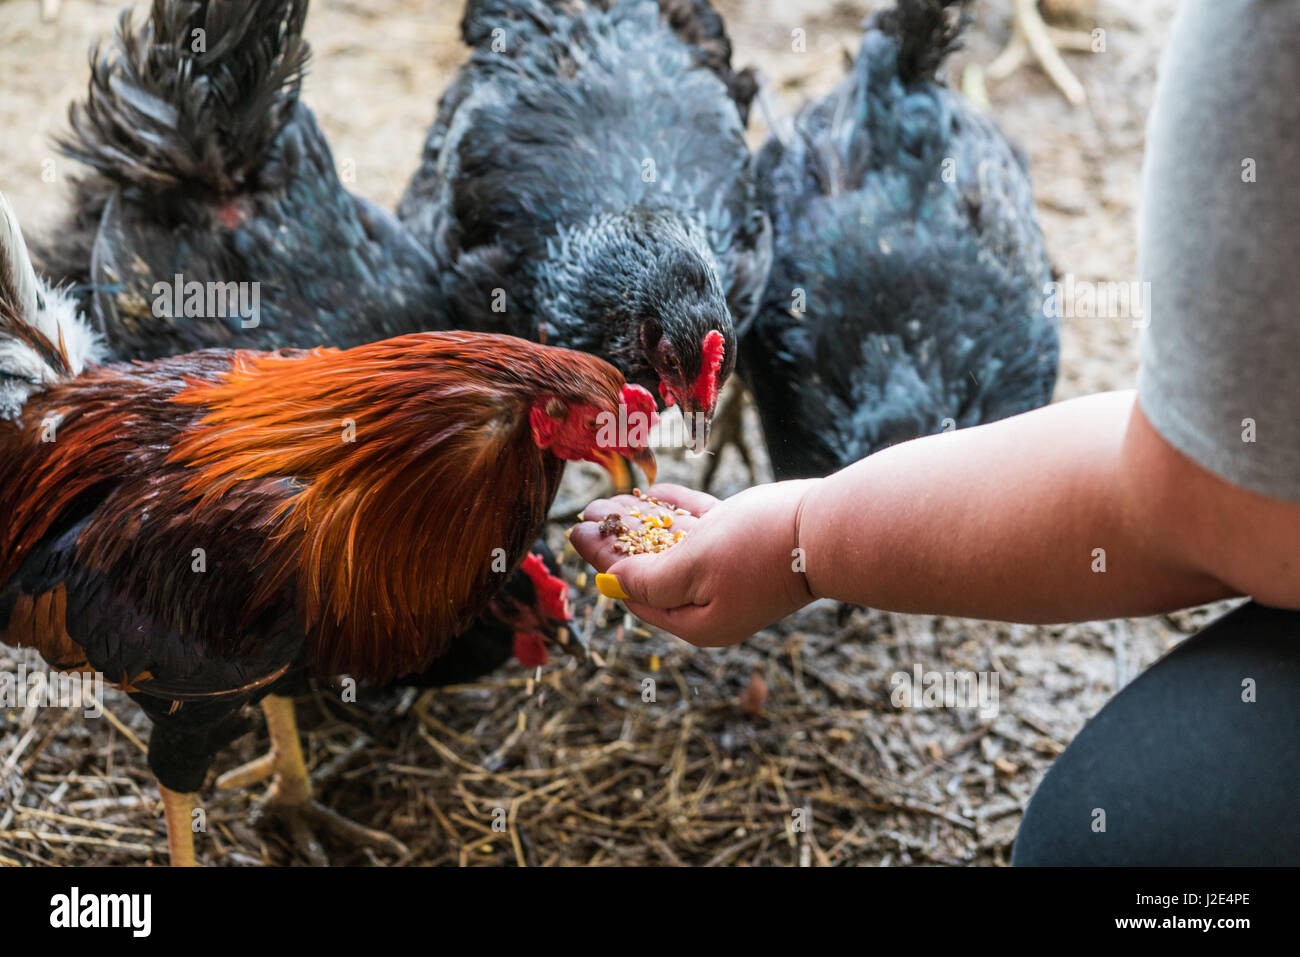 A colorful rooster thrives at Piedmont Farm Animal Rescue - Stock Image